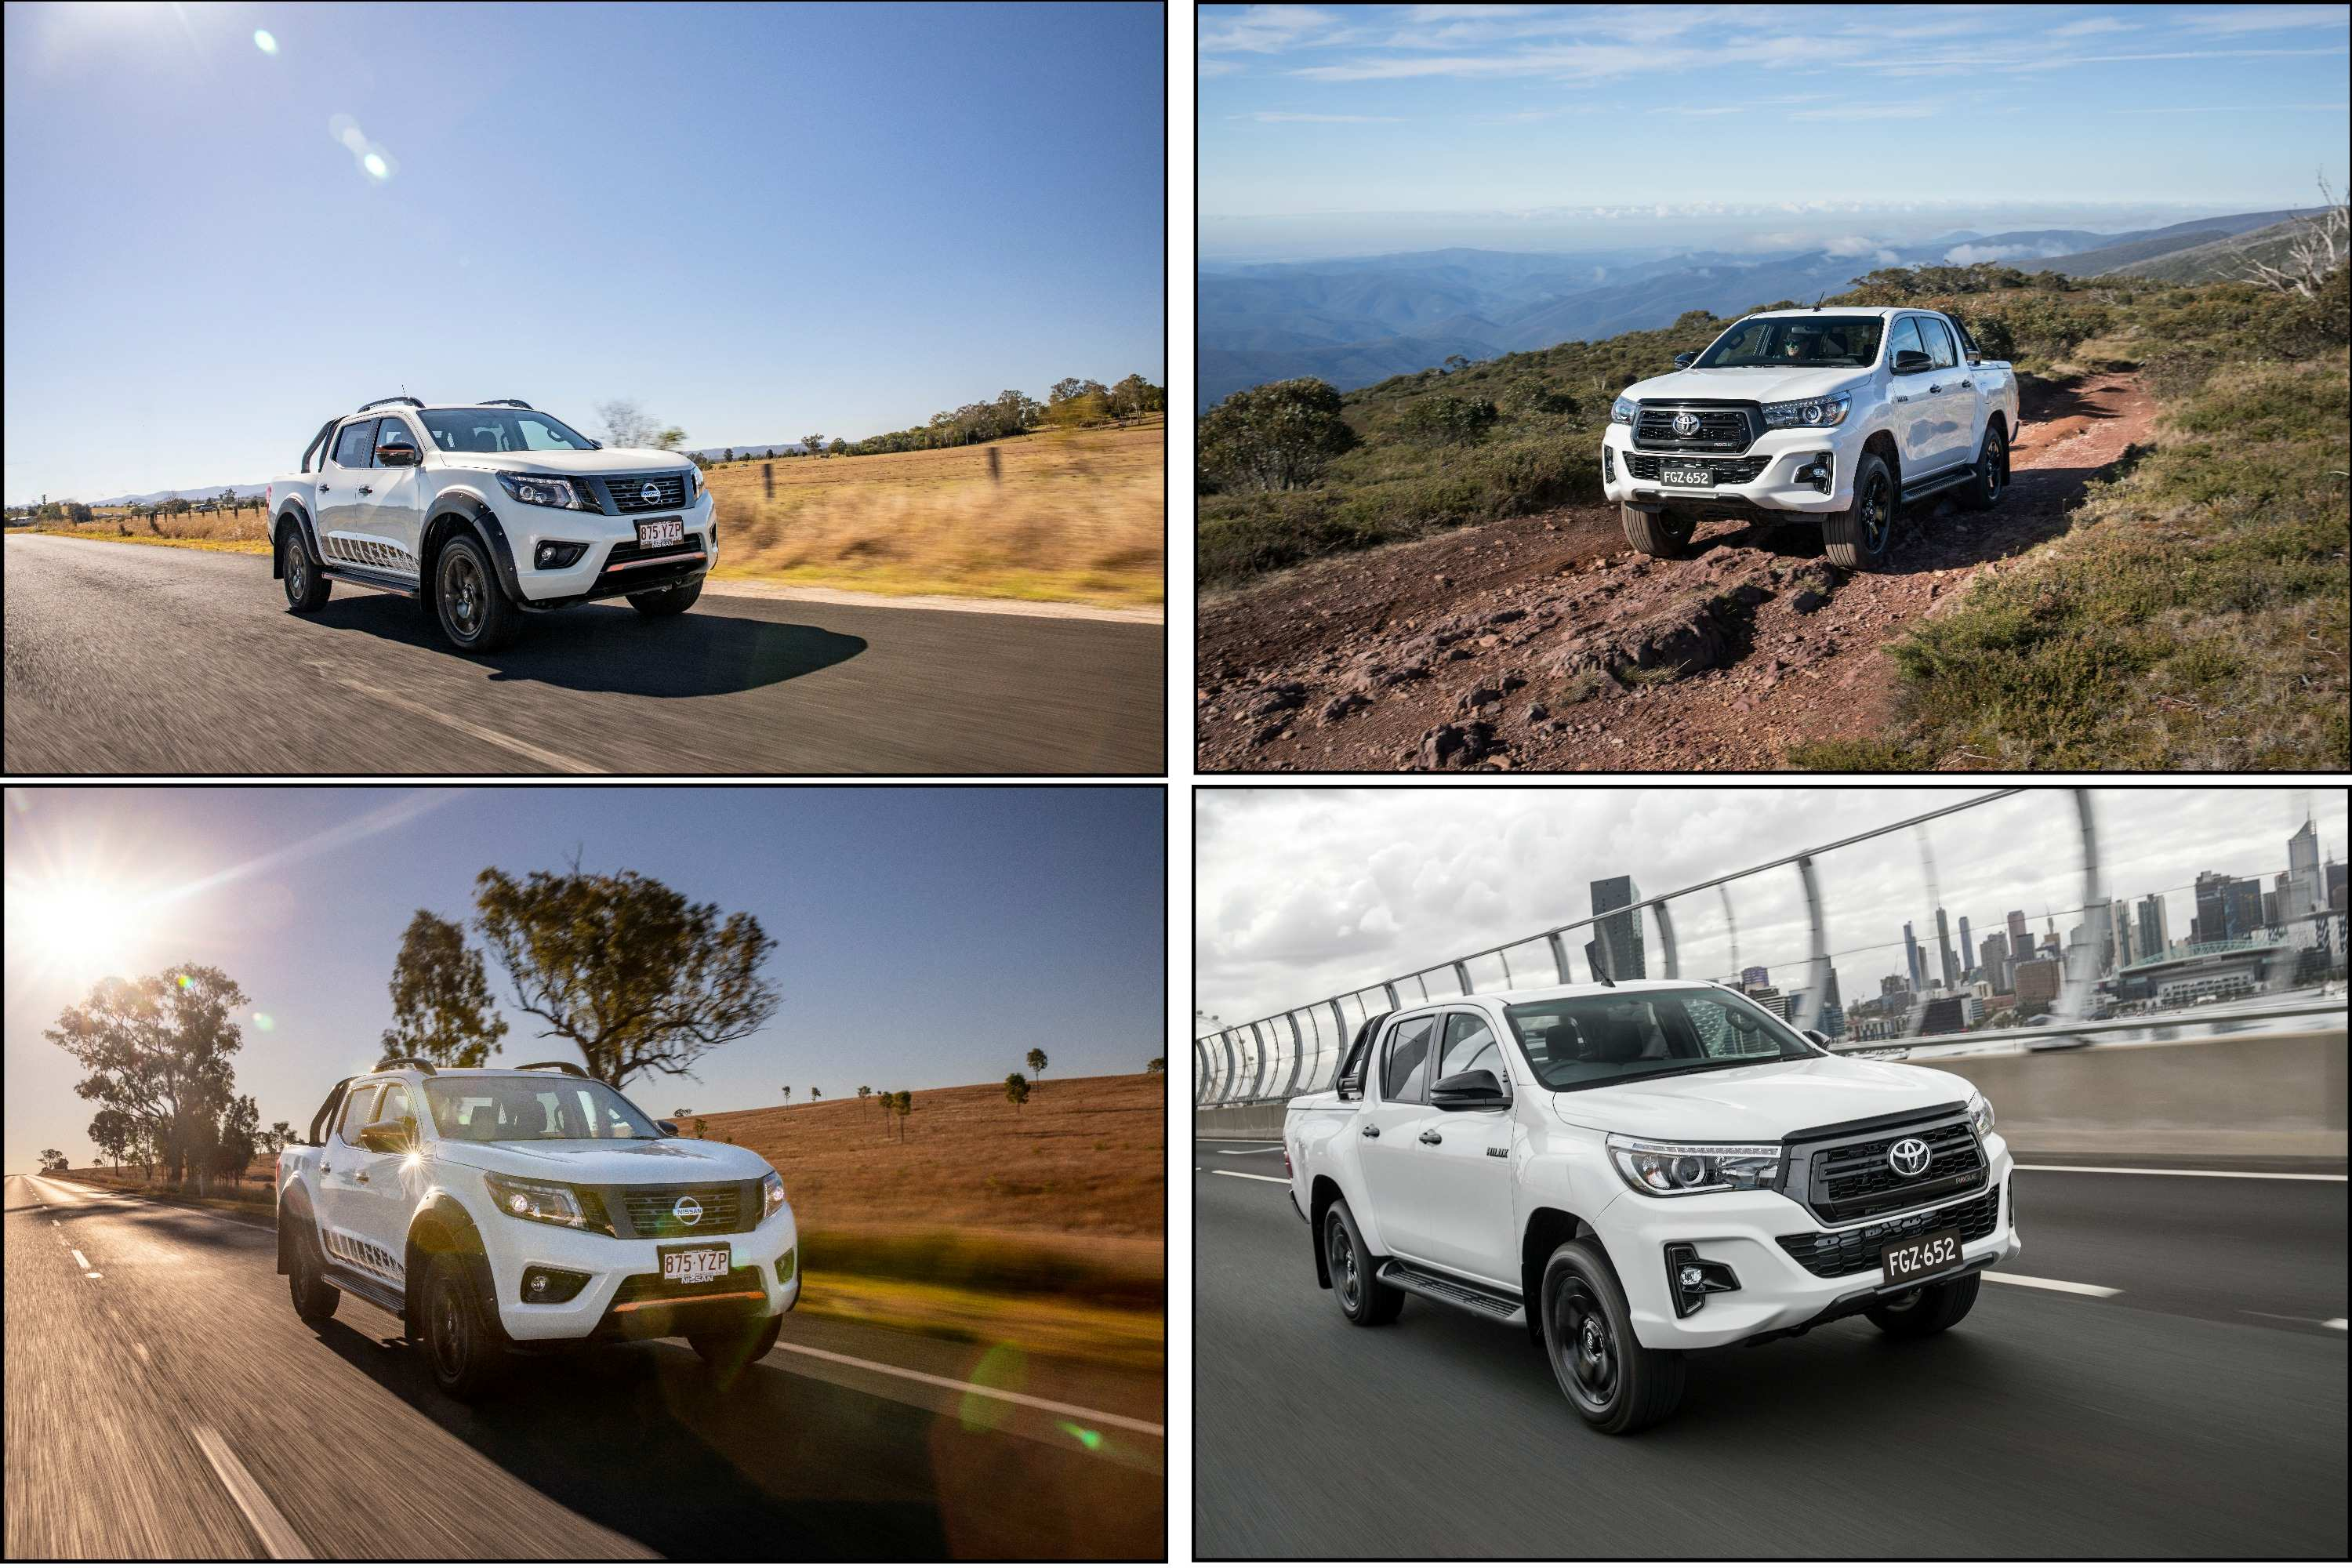 2020 Navara N-TREK VS HiLux Rogue comparison driving